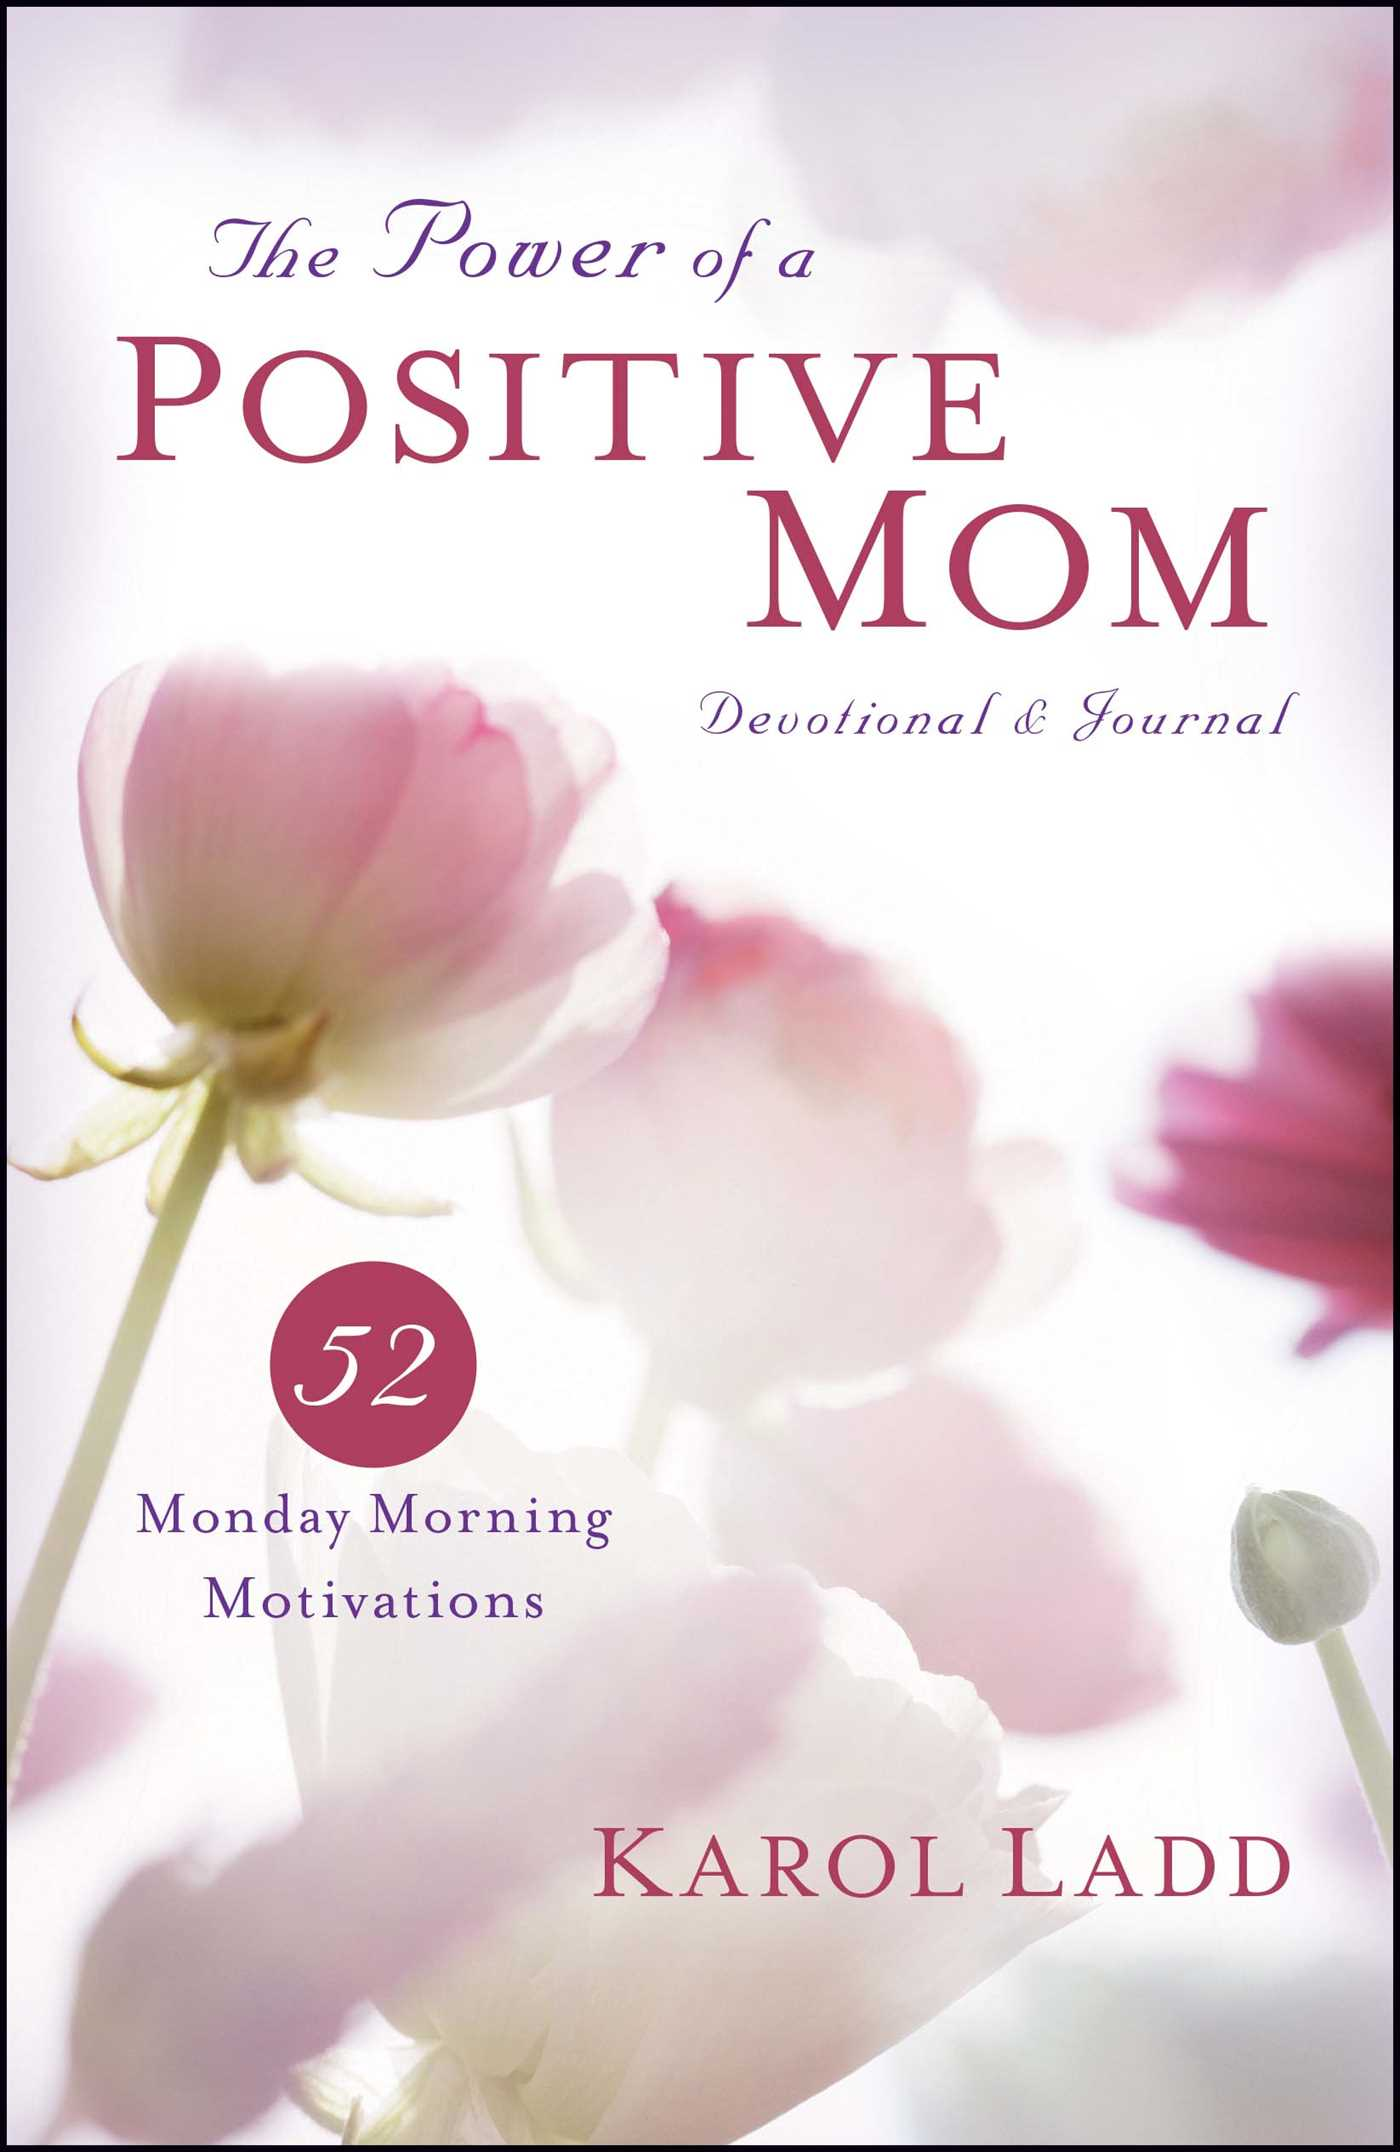 The power of a positive mom devotional journal 9781451649451 hr